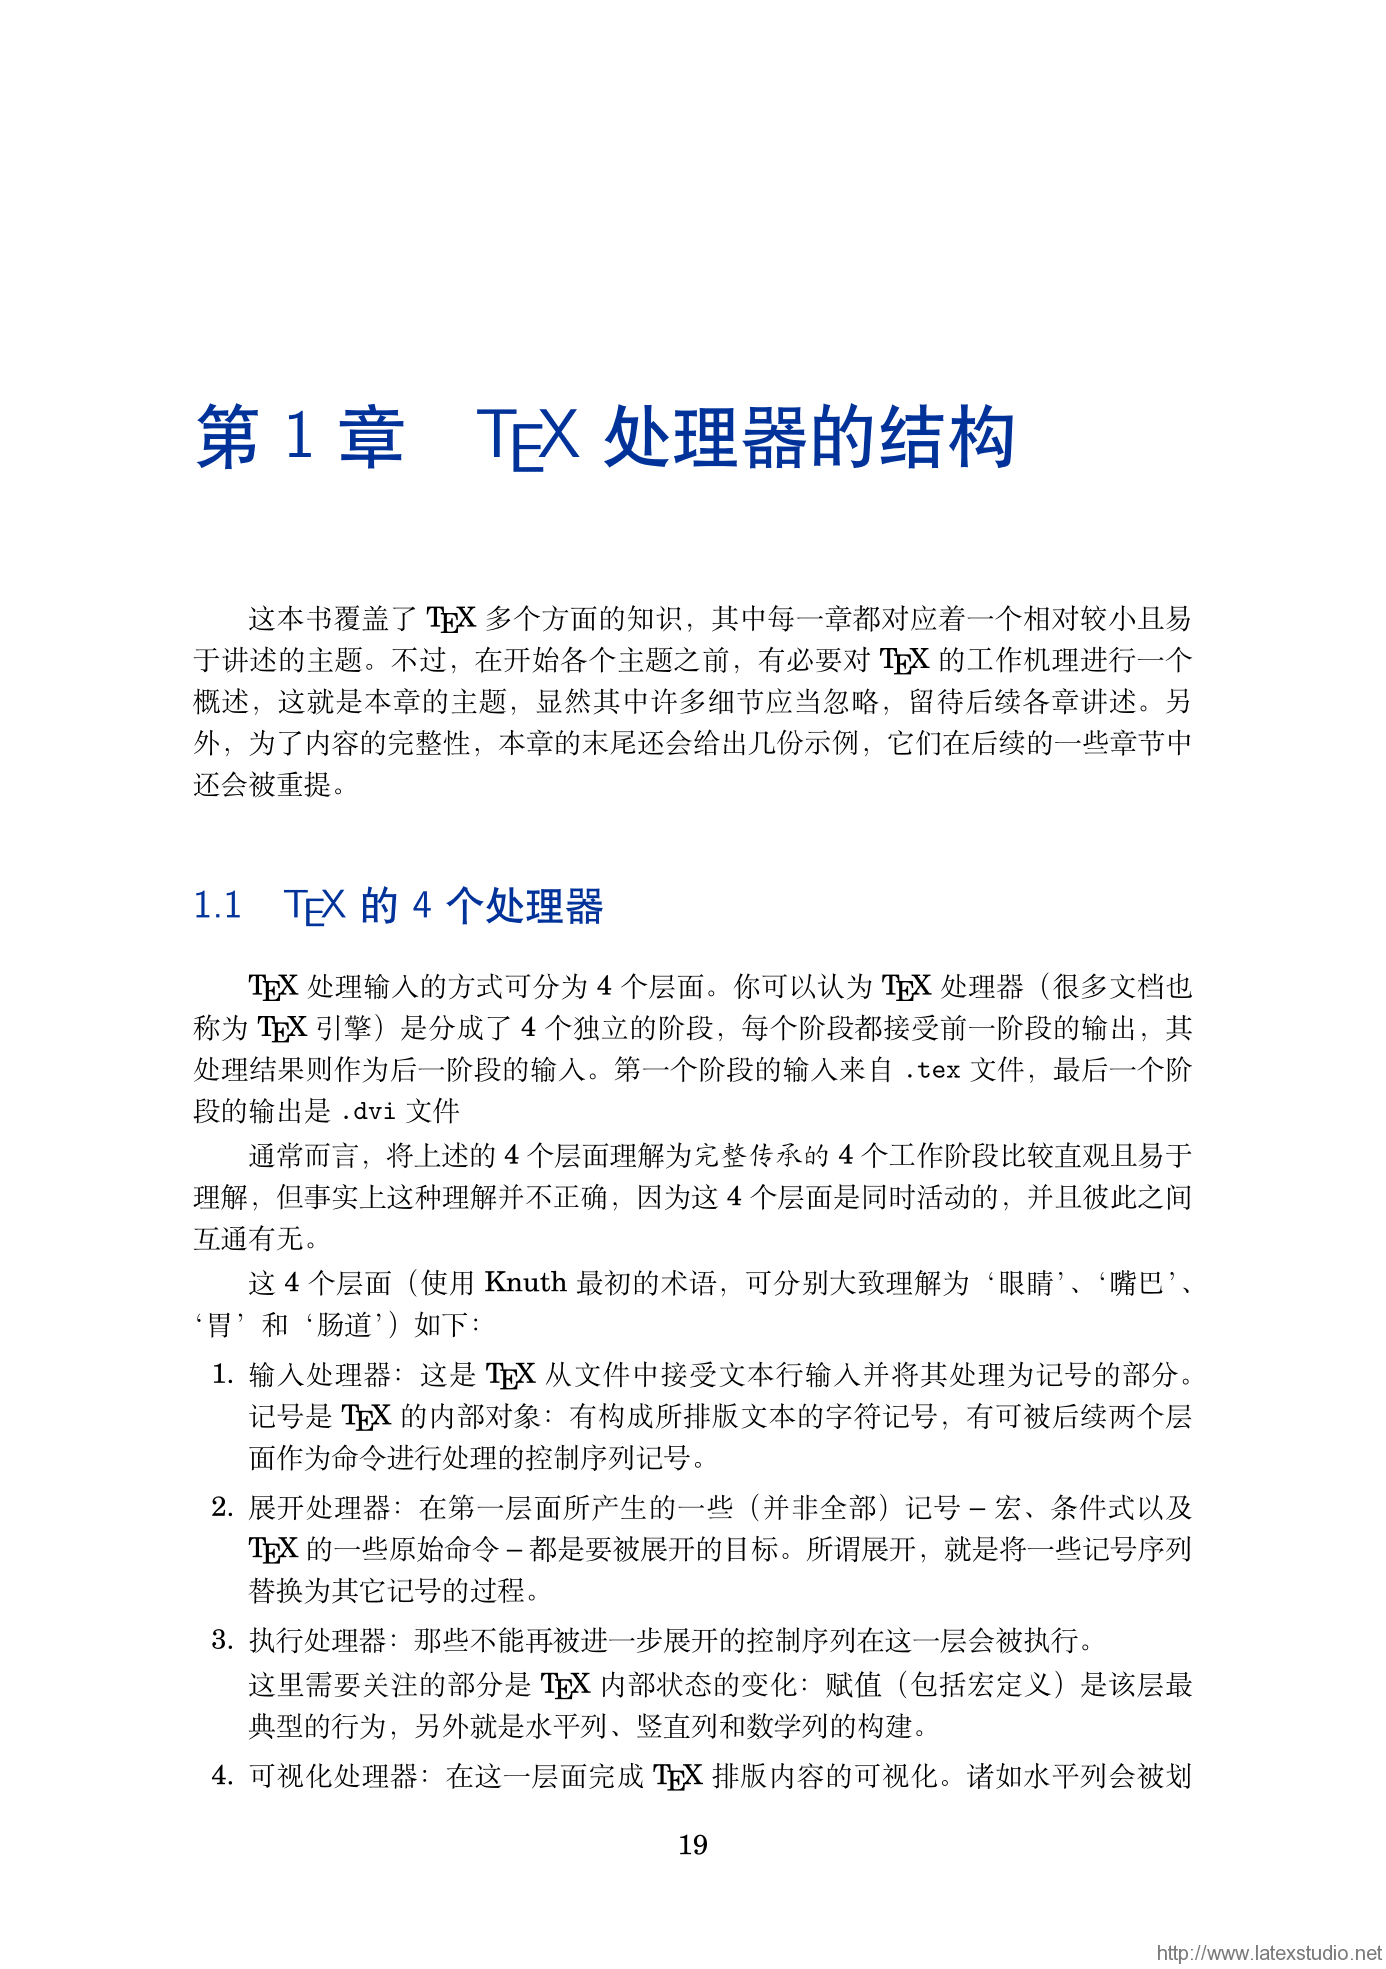 tex-by-topic-cn-21